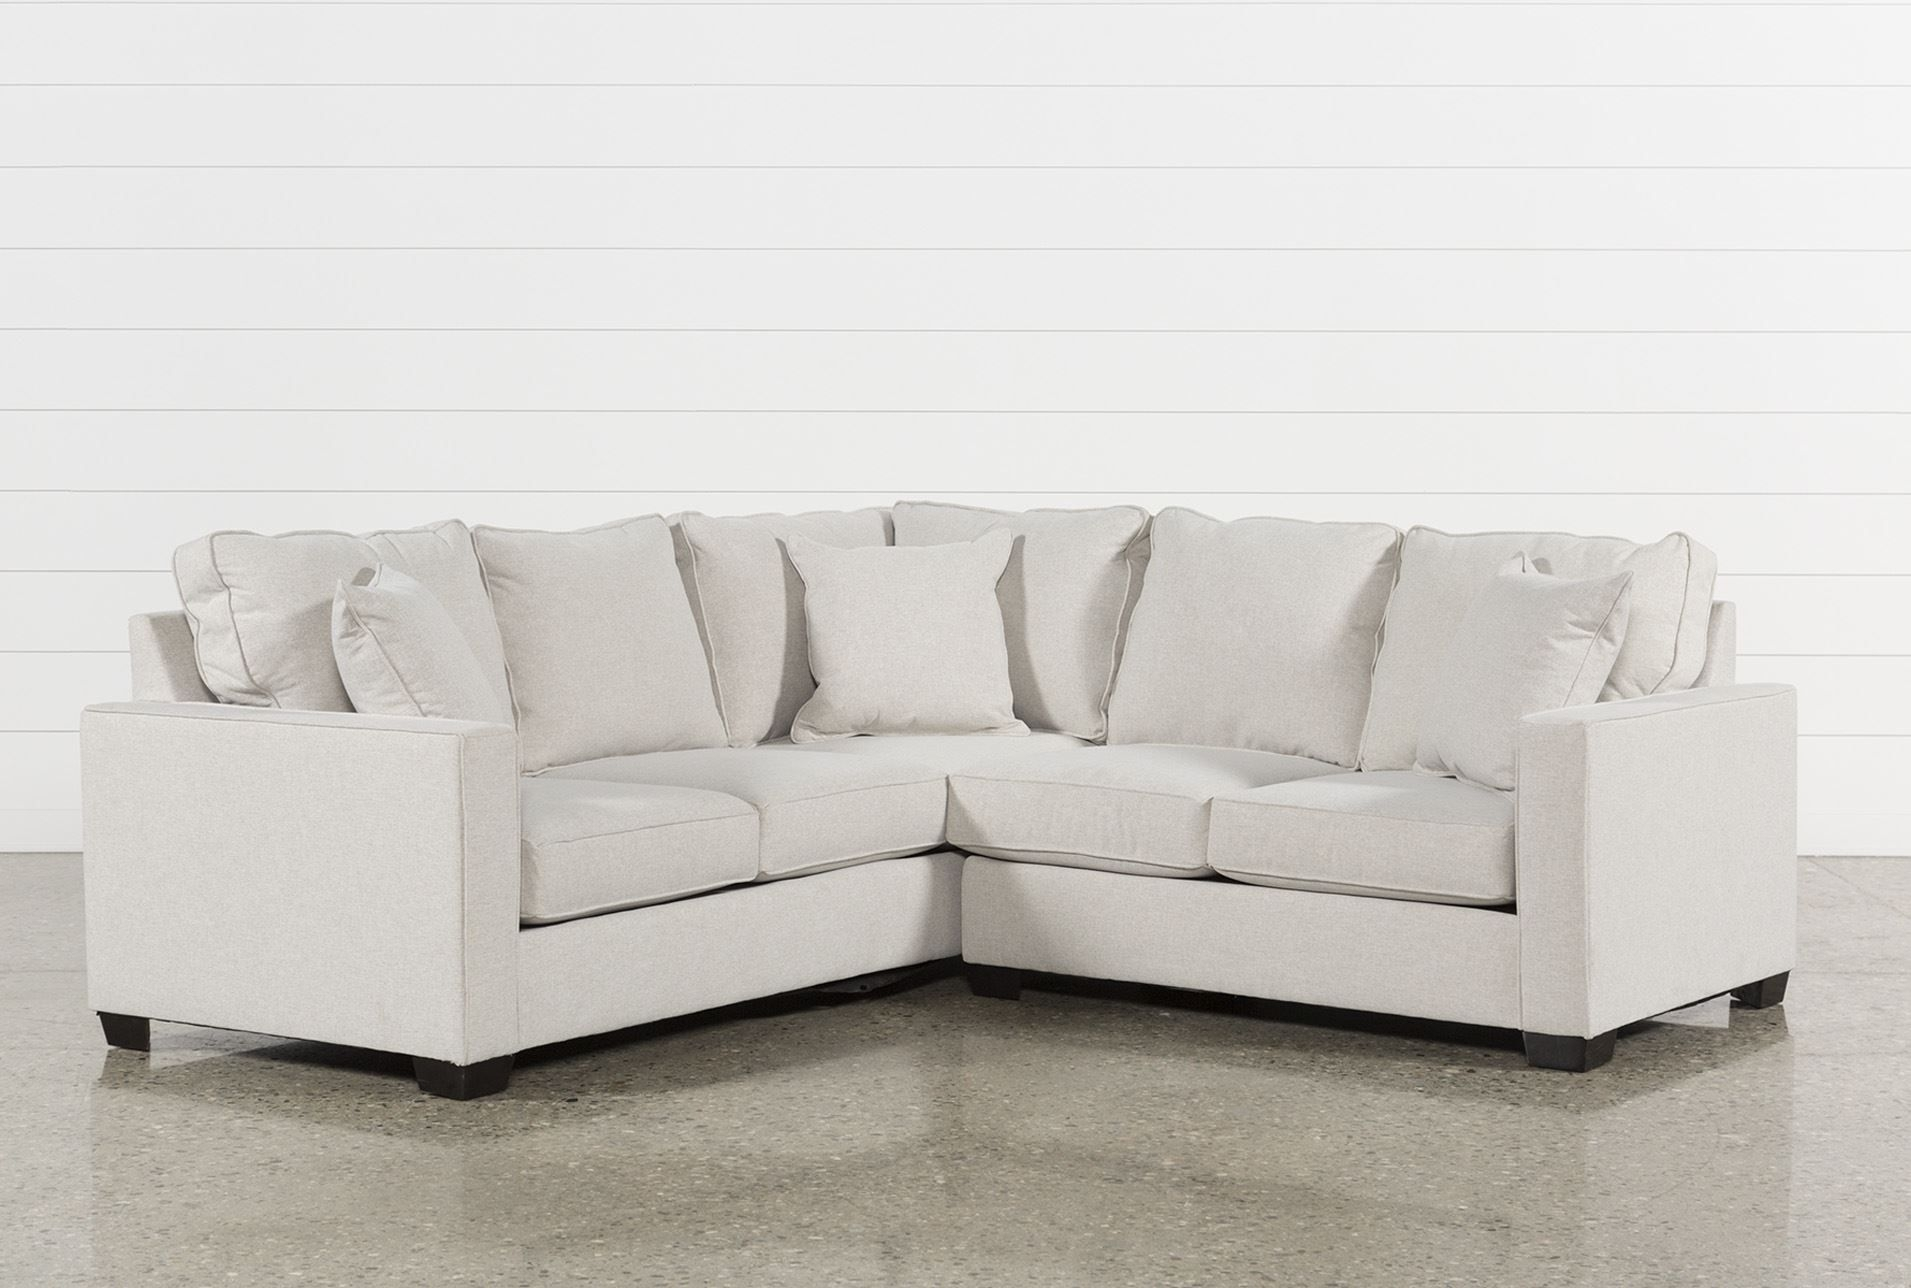 Raphael Ii Flax 2 Piece Sectionalw/raf Loveseat, Beige, Sofas Throughout Marissa Ii 3 Piece Sectionals (View 7 of 25)